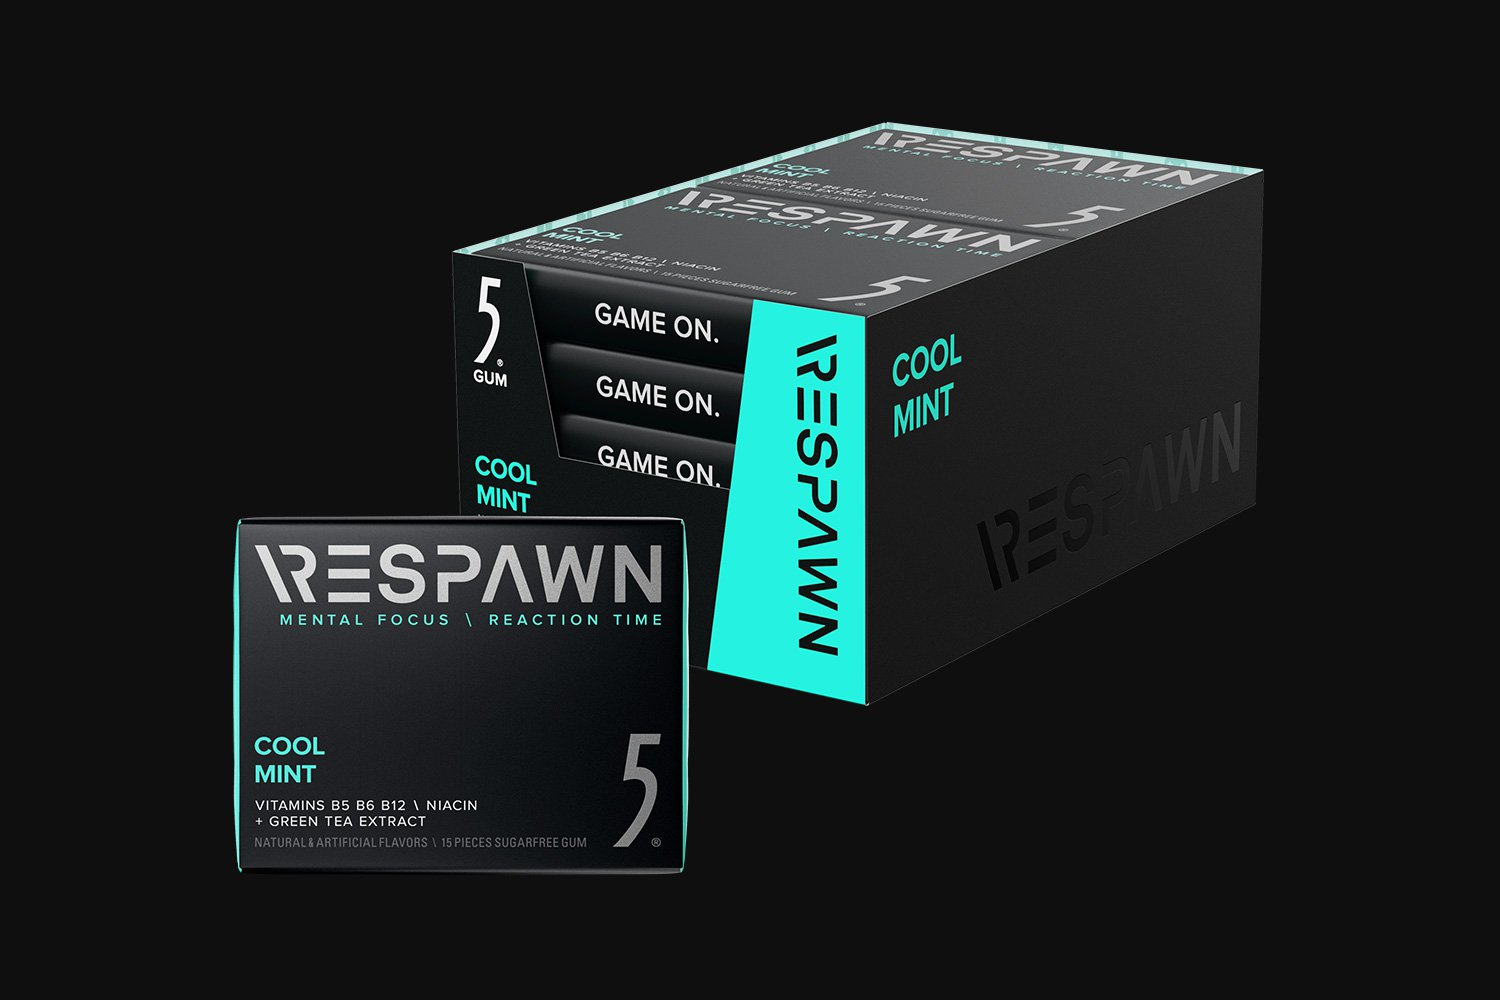 RESPAWN By 5 - Cool Mint Mental Performance Booster Gum